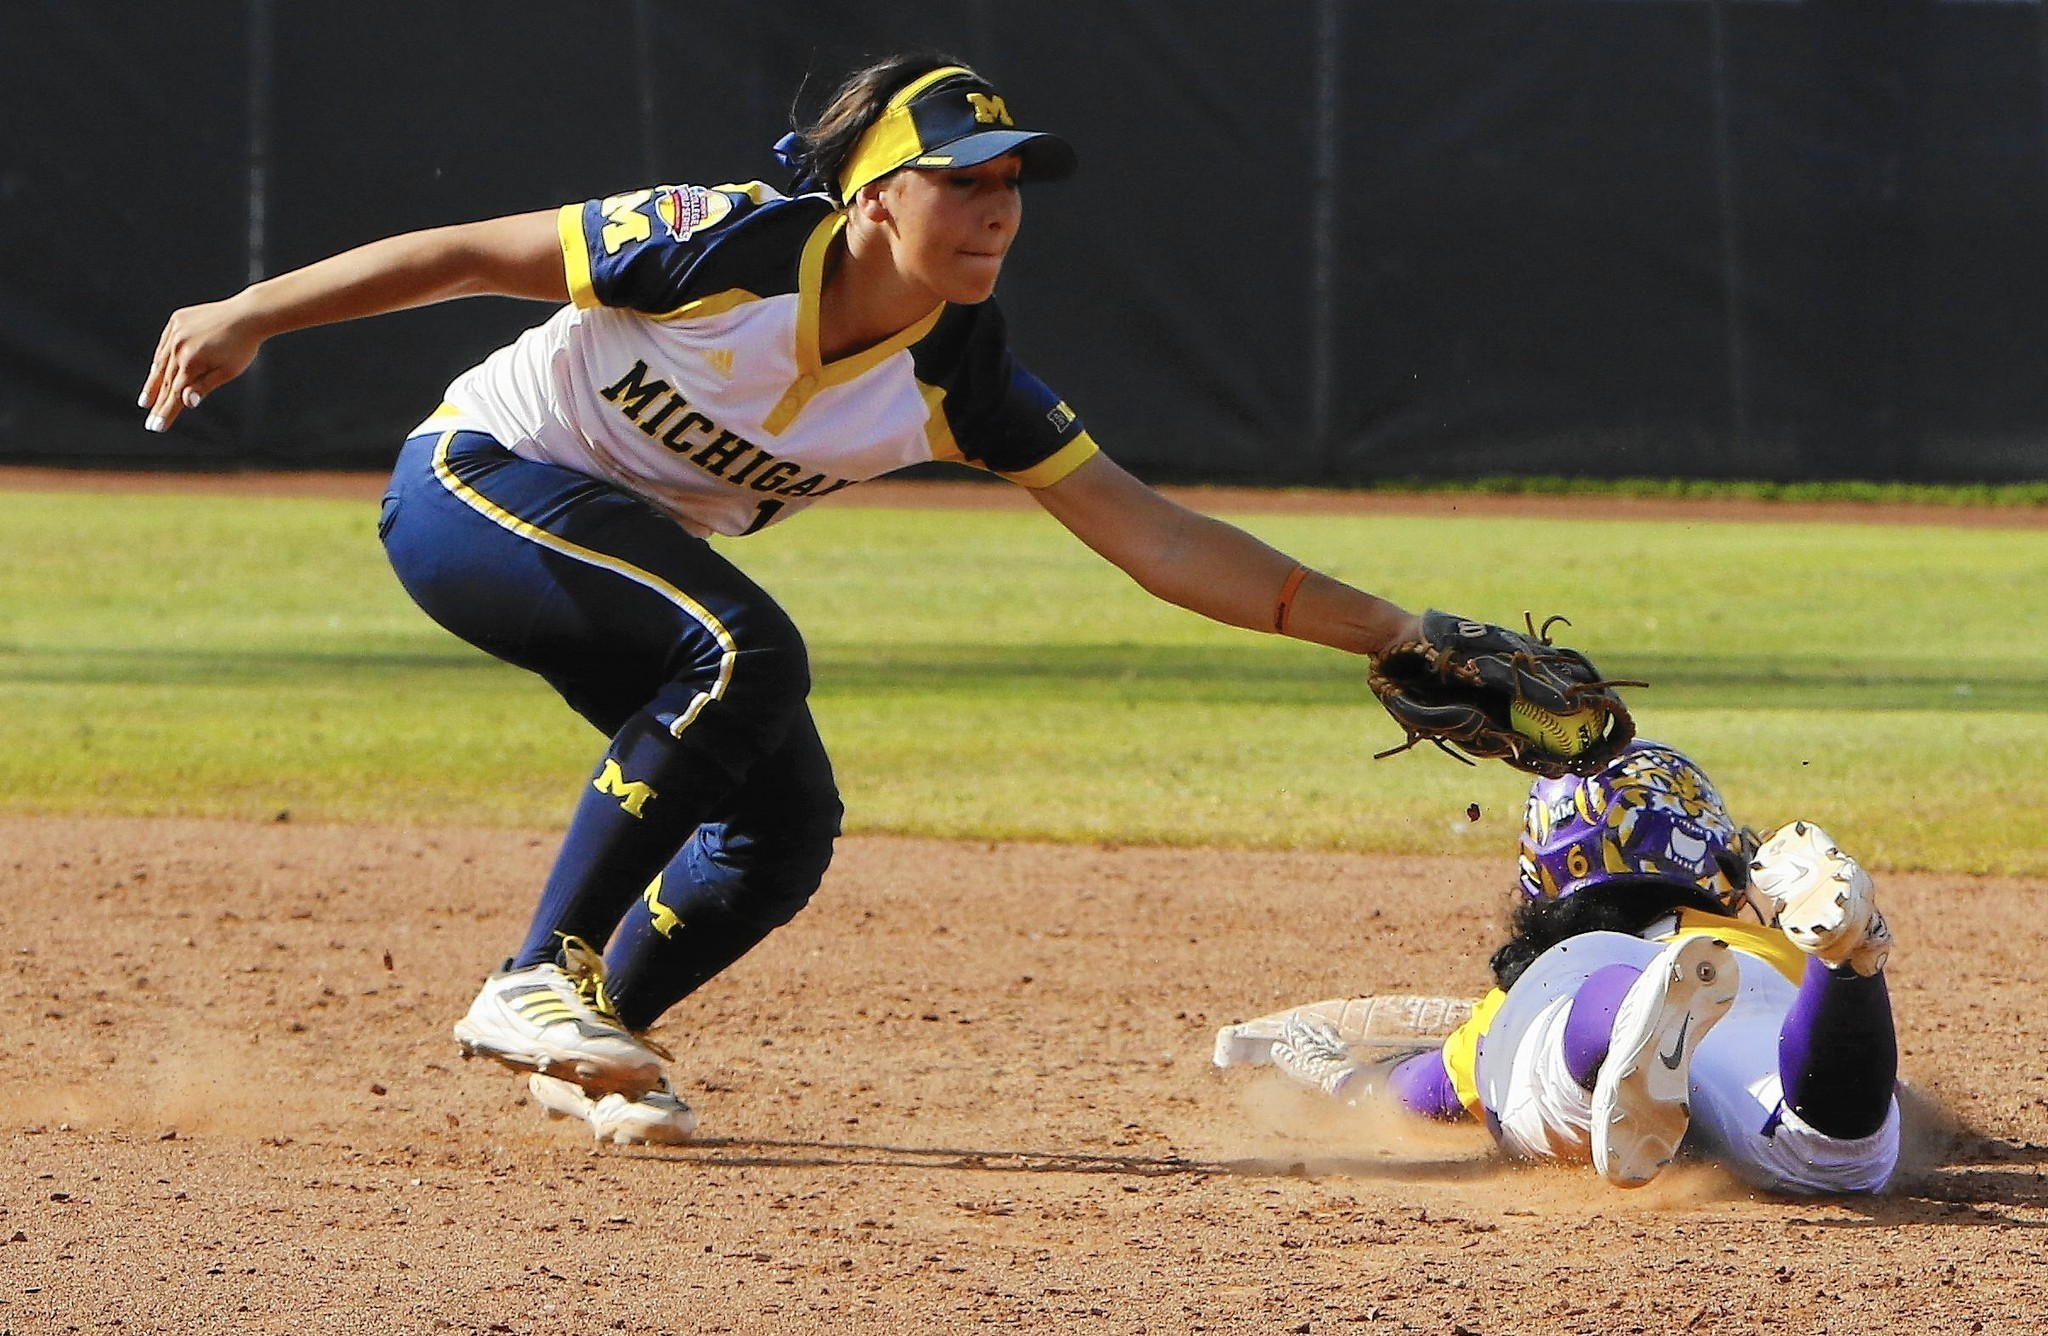 Abby Ramirez Stands Out On Talented Michigan Softball Team